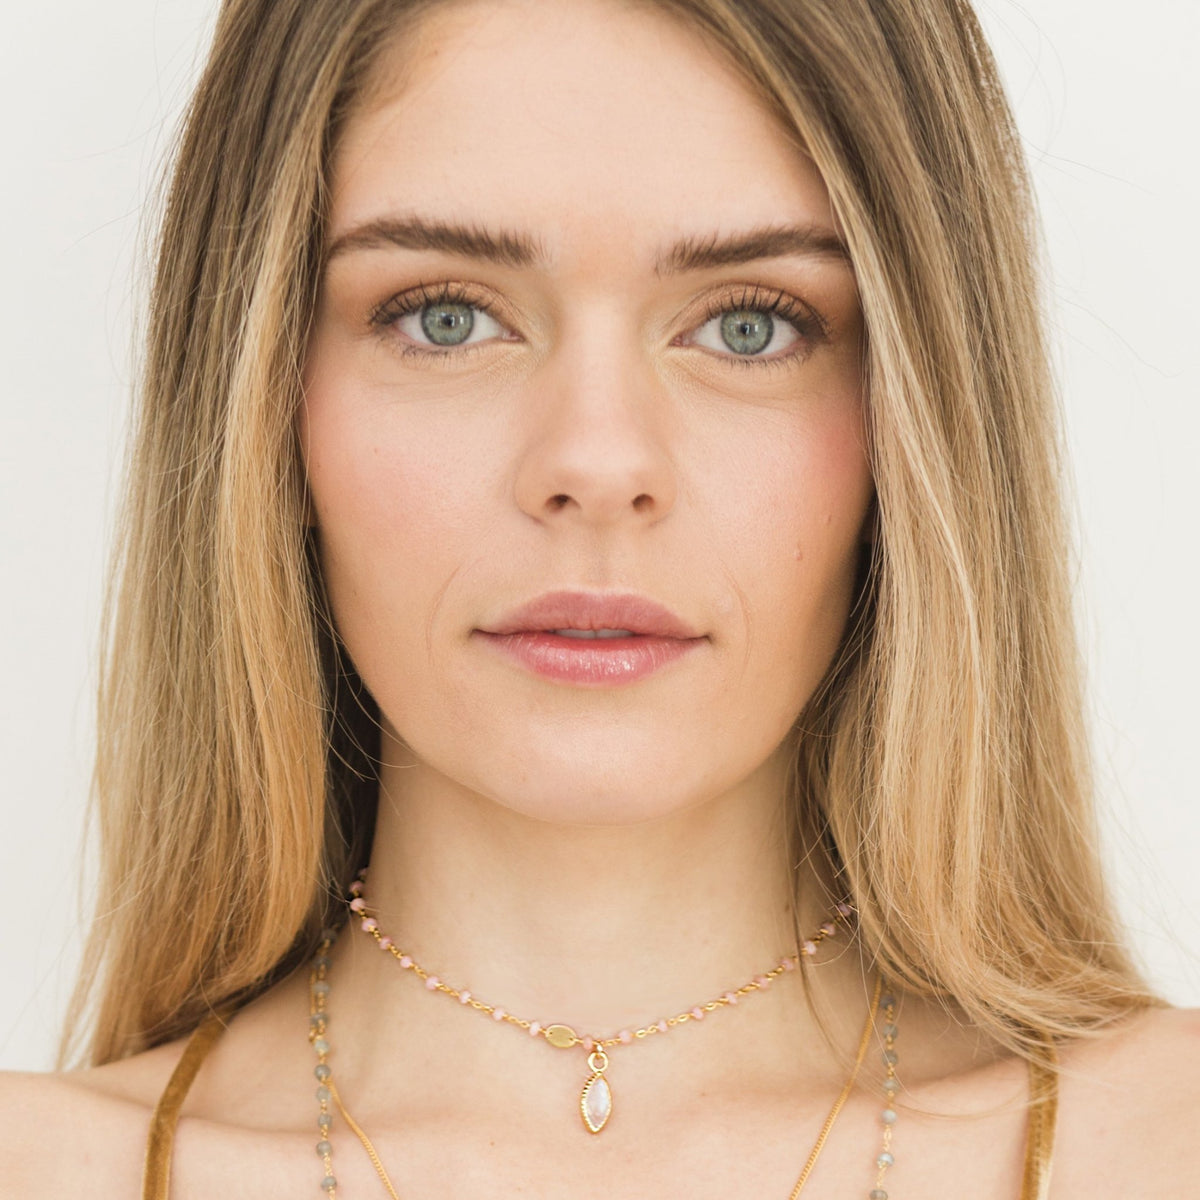 TRUST ICON - RAINBOW MOONSTONE & GOLD - SO PRETTY CARA COTTER